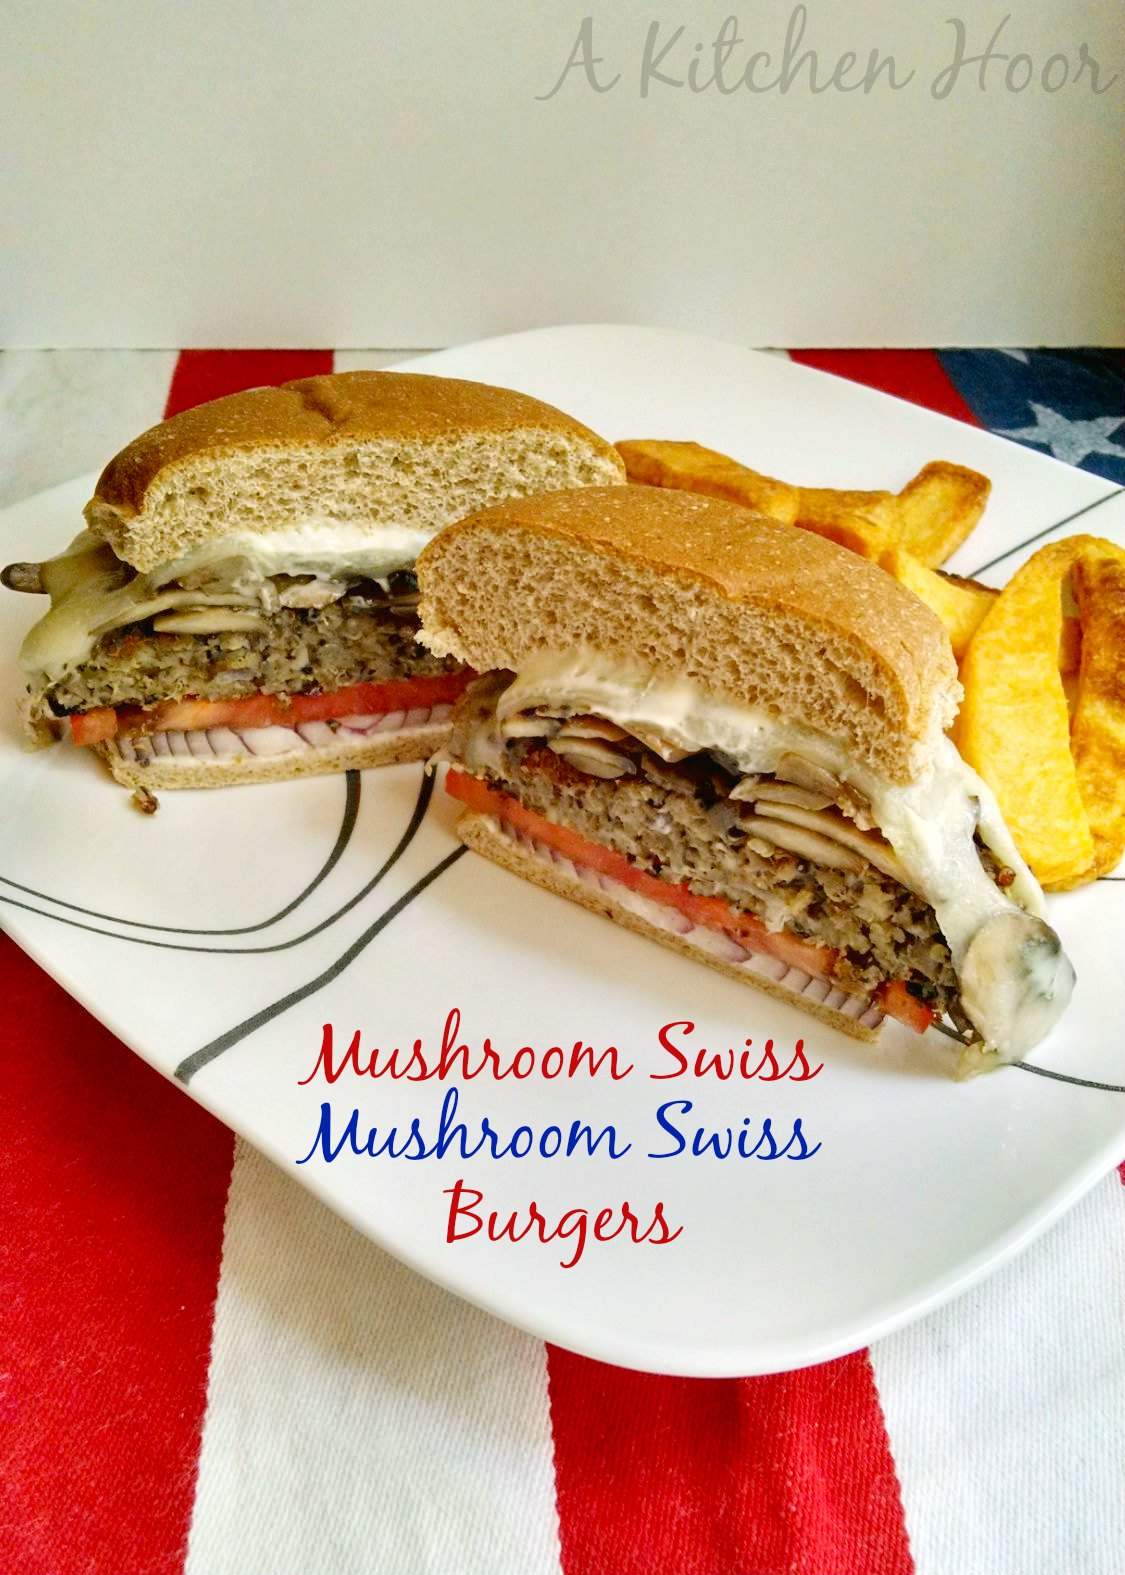 These #MemorialDay #MeatlessMonday Mushroom Swiss Mushroom Swiss Burgers have tasty mushrooms and Swiss cheese twice in this #meatless burger recipe.